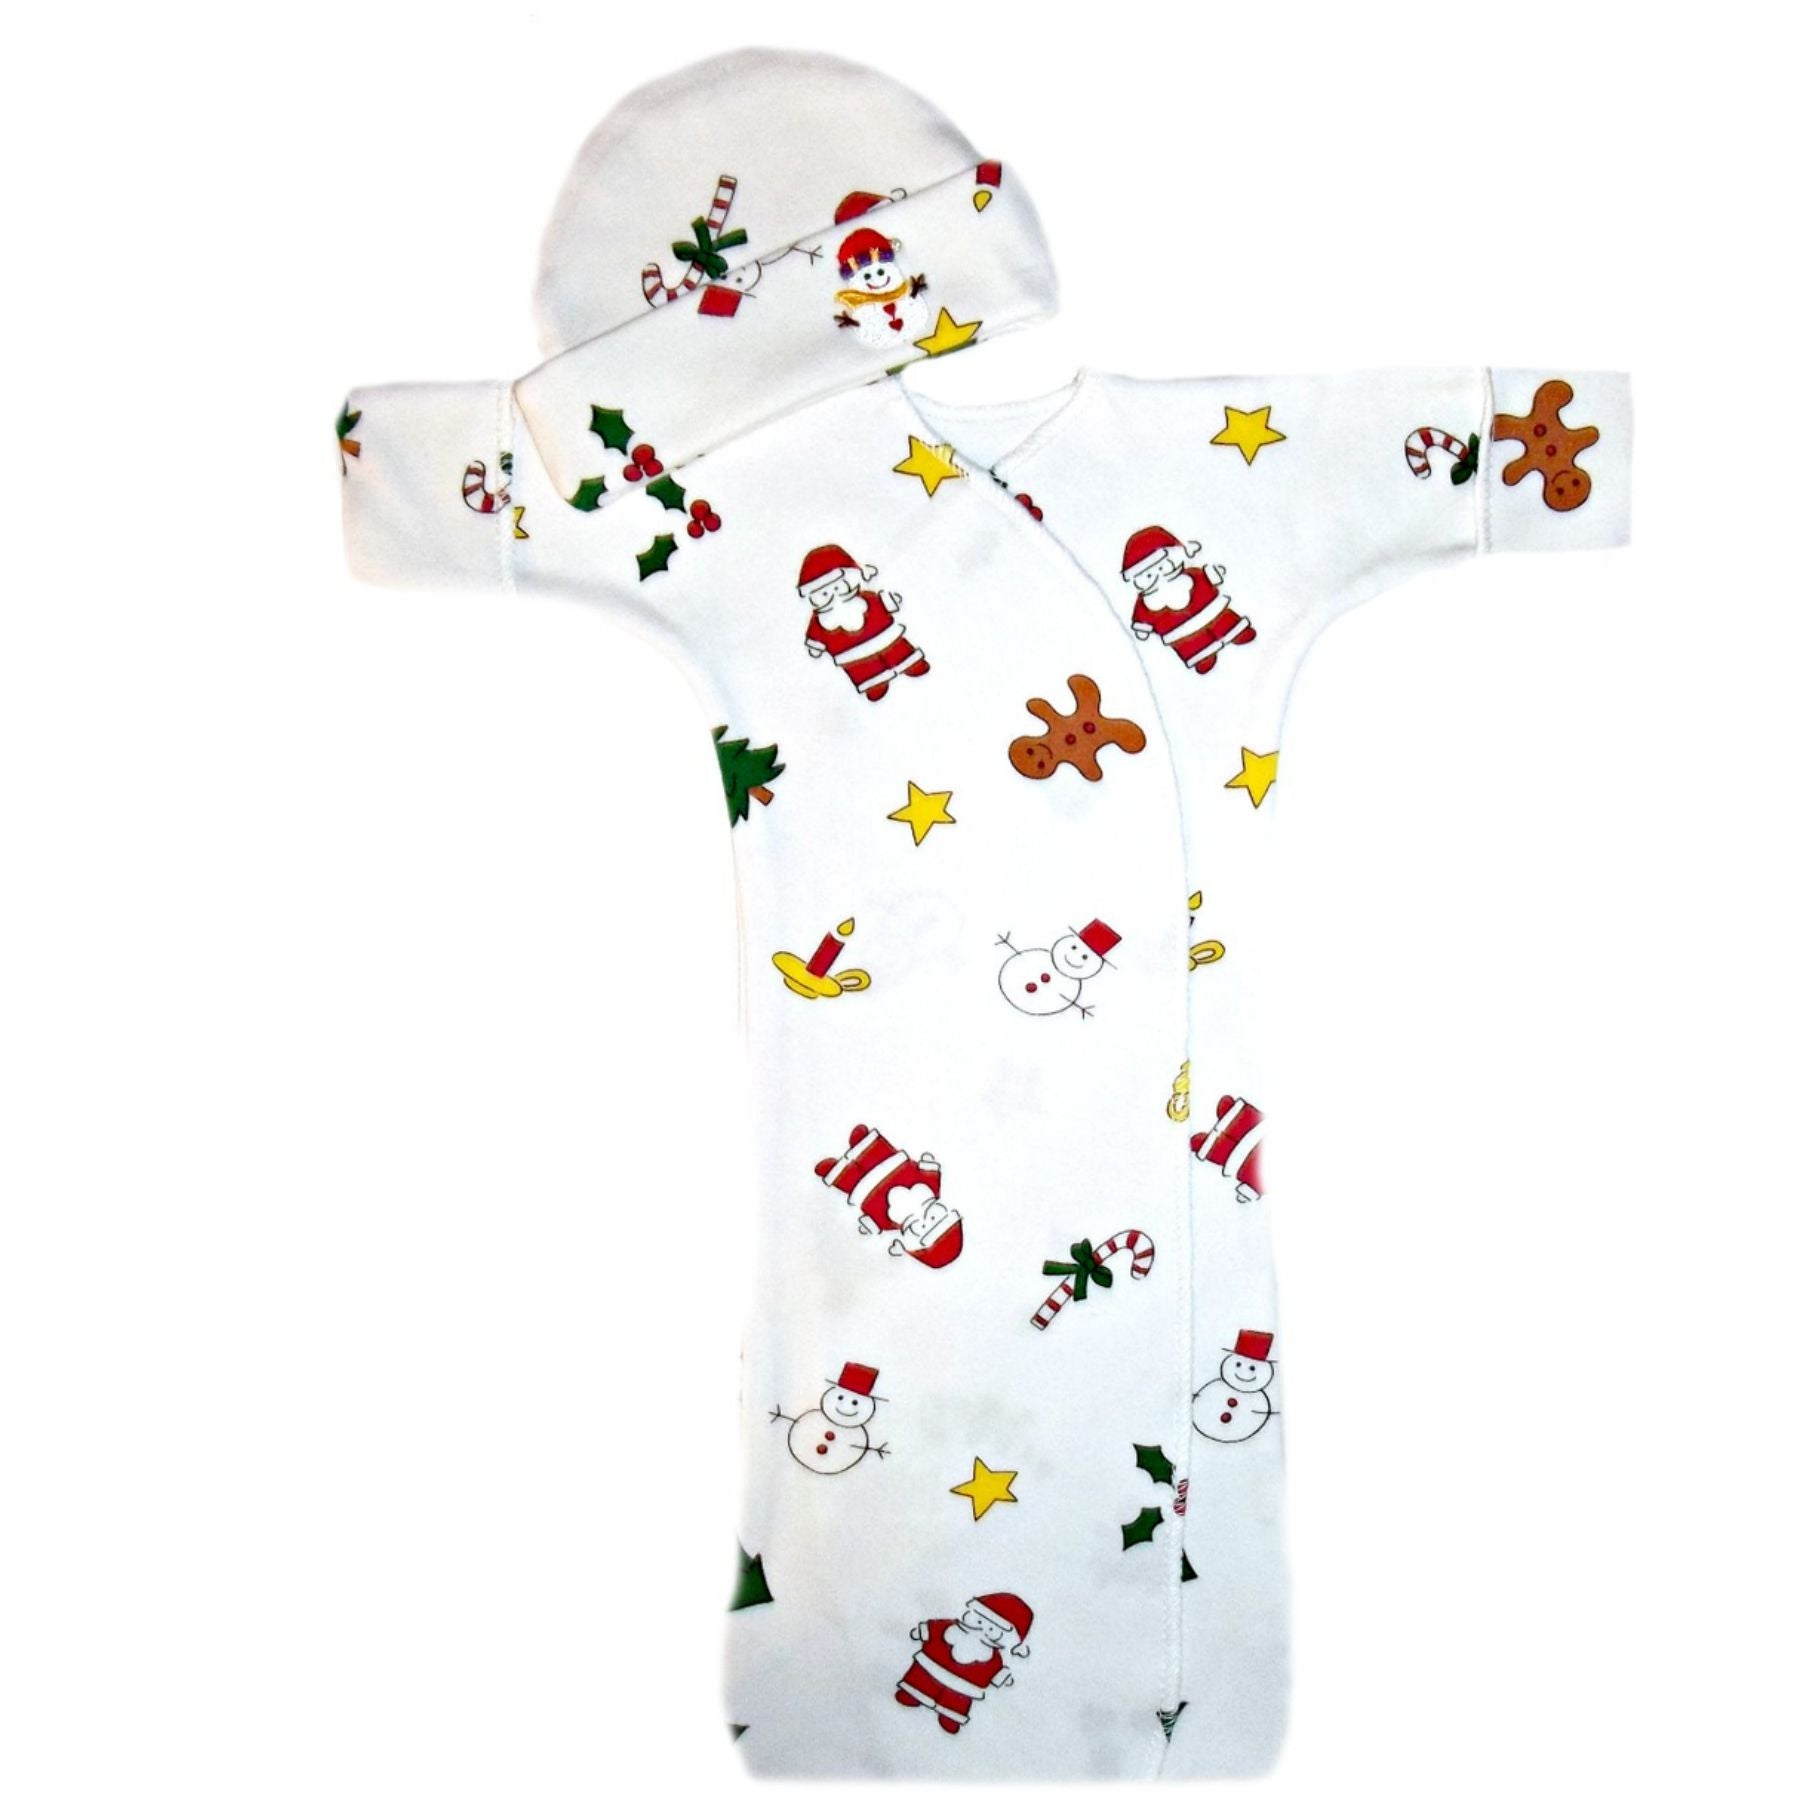 c519c6f4b1a1f Unisex Baby Christmas Bunting Gown and Hat Set sized for Preemie and Newborn  Babies